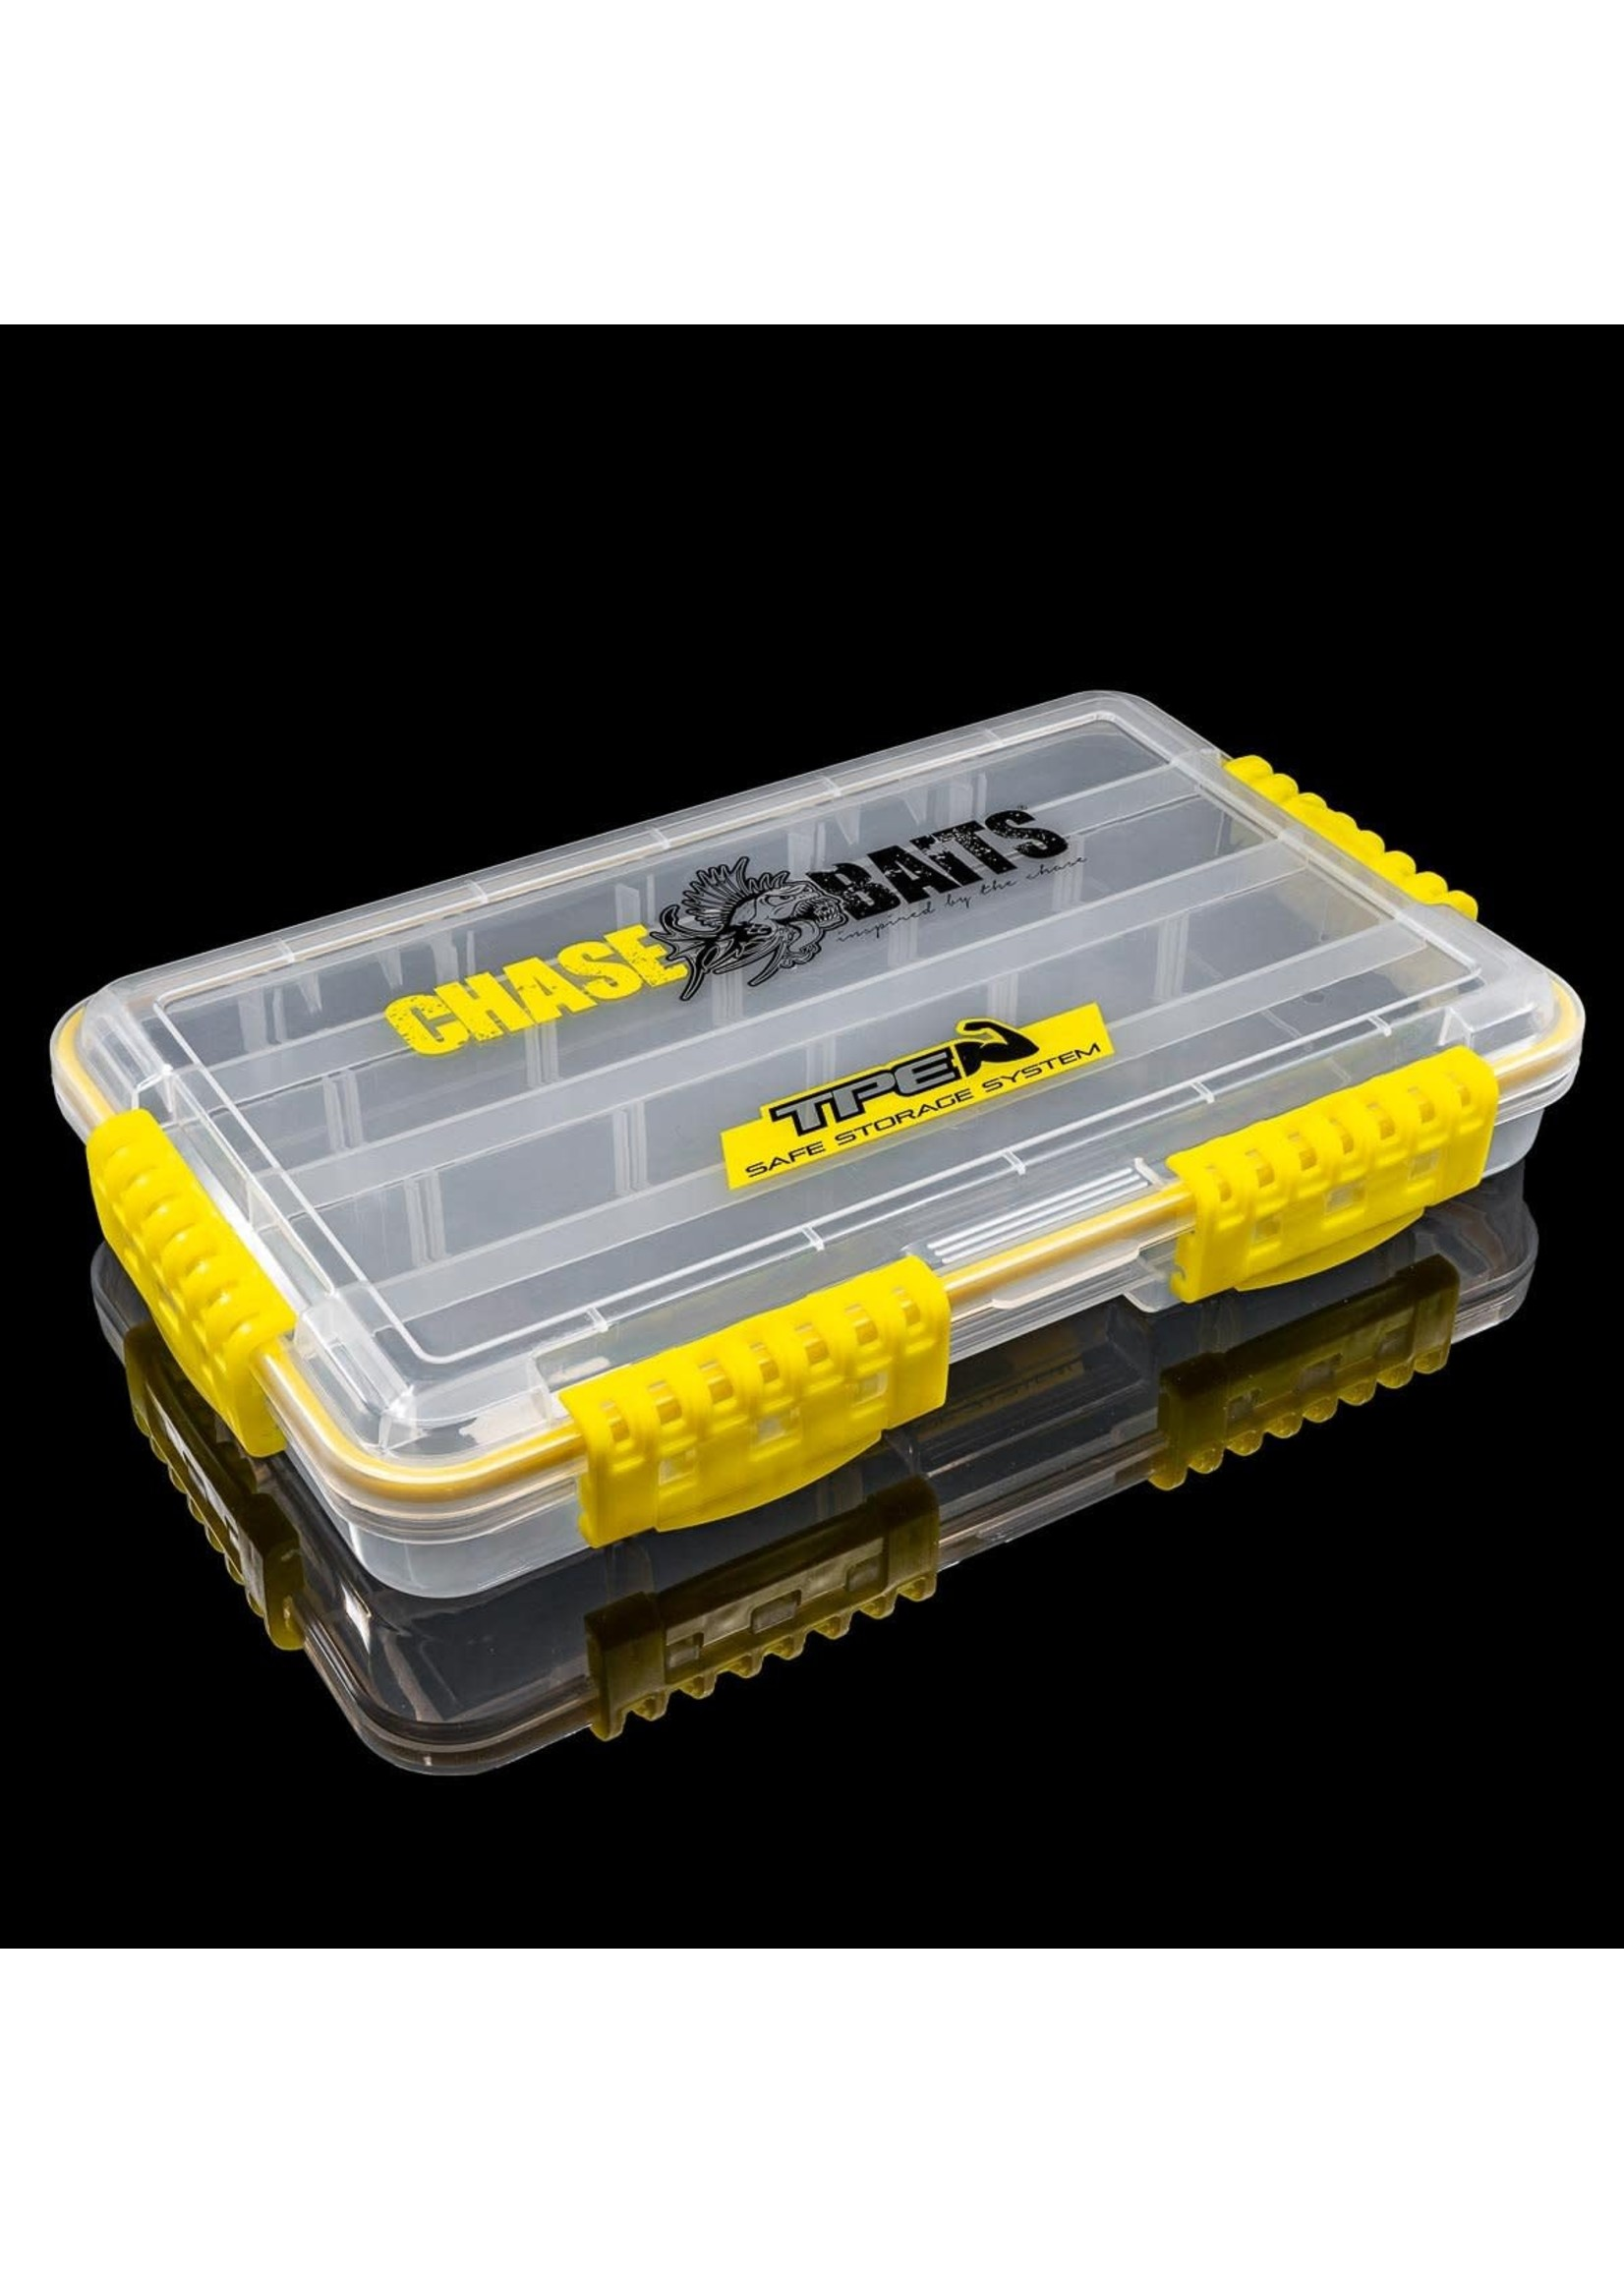 ChaseBaits Tackle Tray TPE Med